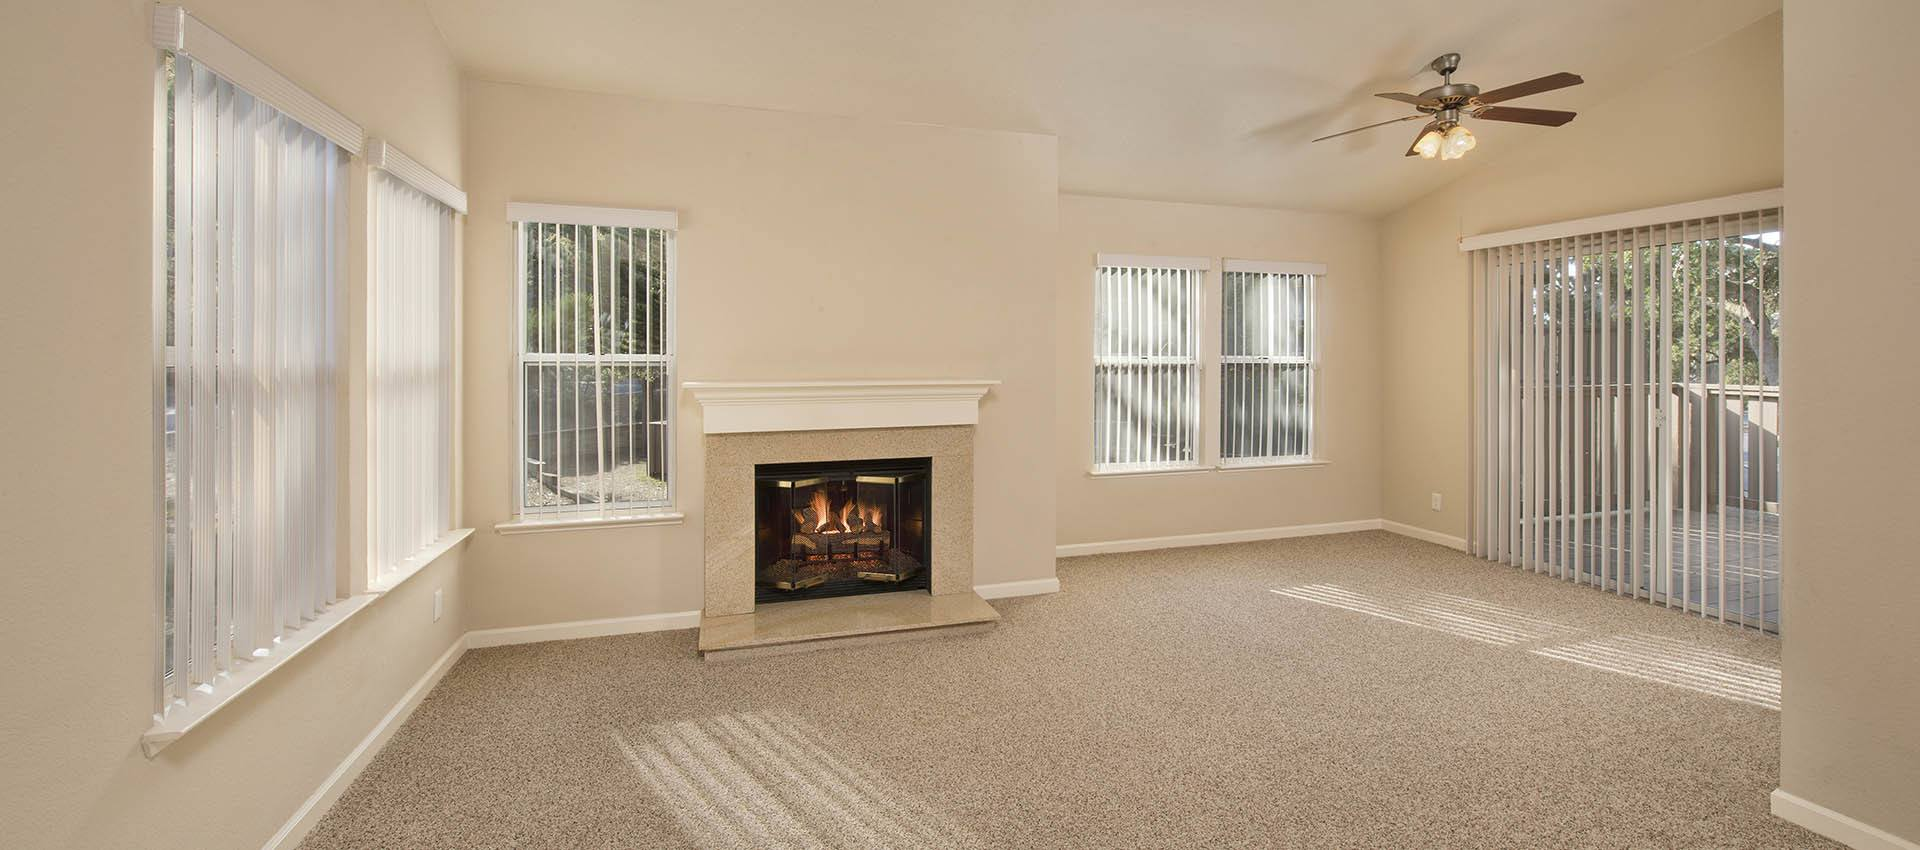 Spacious Living Area With Fireplace at Seventeen Mile Drive Village Apartment Homes in Pacific Grove